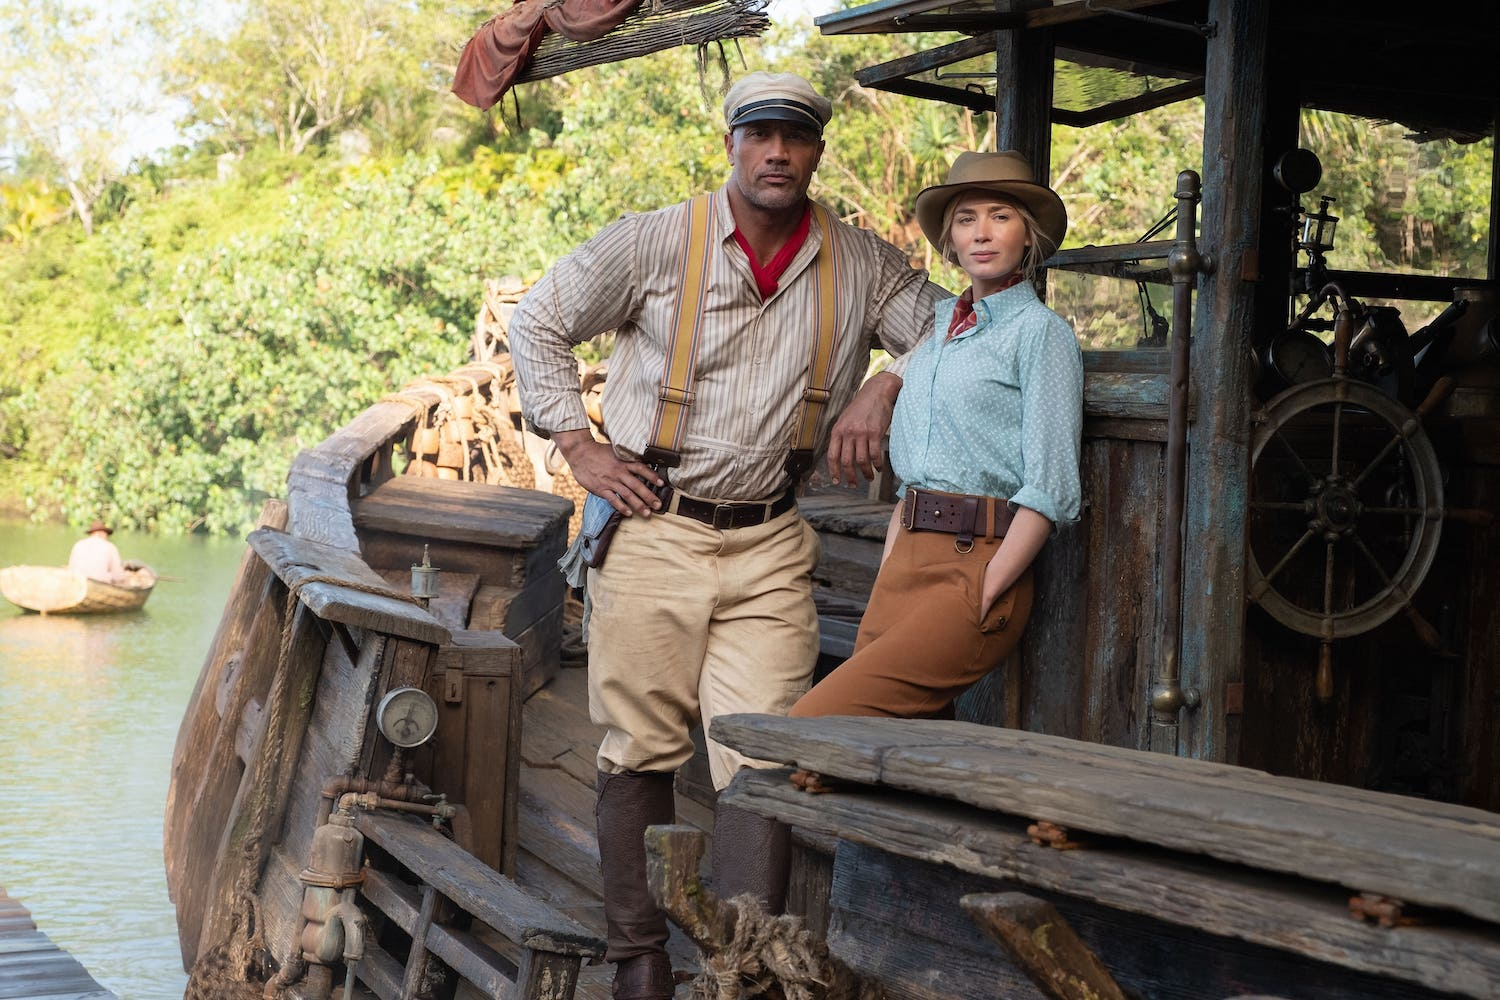 Dwayne Johnson as Frank and Emily Blunt as Lily in Disney's Jungle Cruise. Photo by Frank Masi. 2020 Disney Enterprises, Inc. All Rights Reserved.